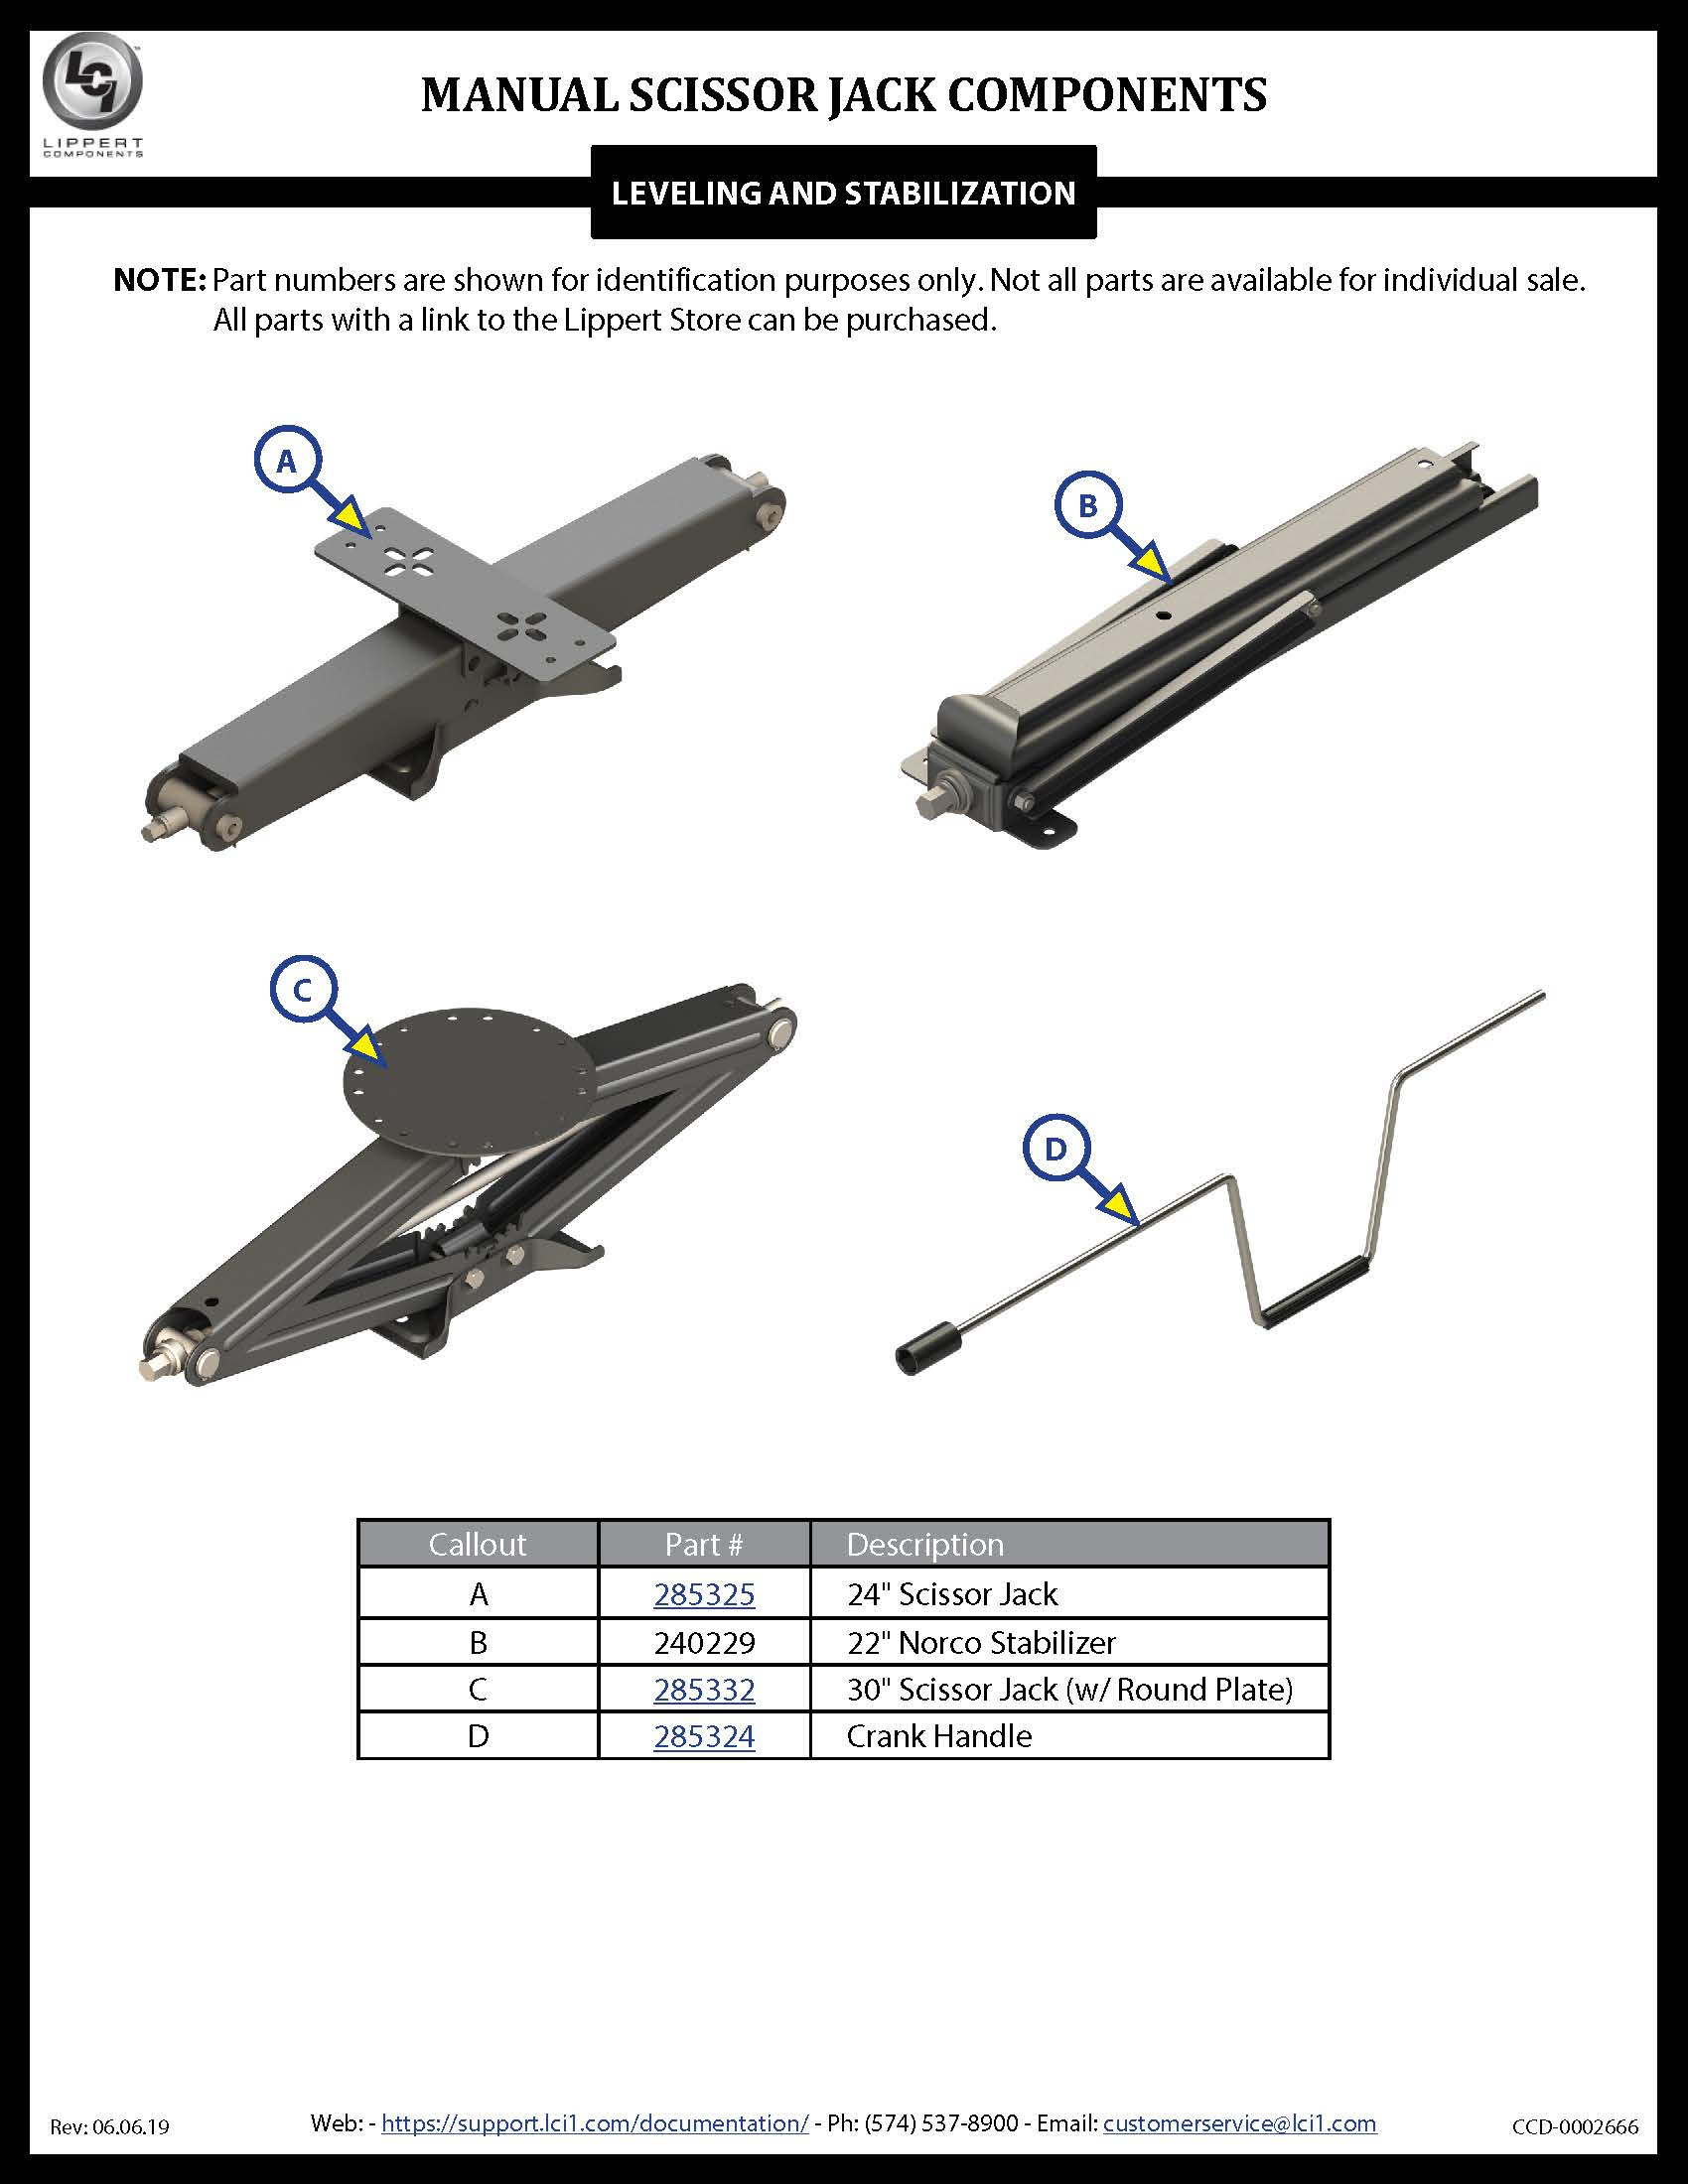 Manual Scissor Jacks Components